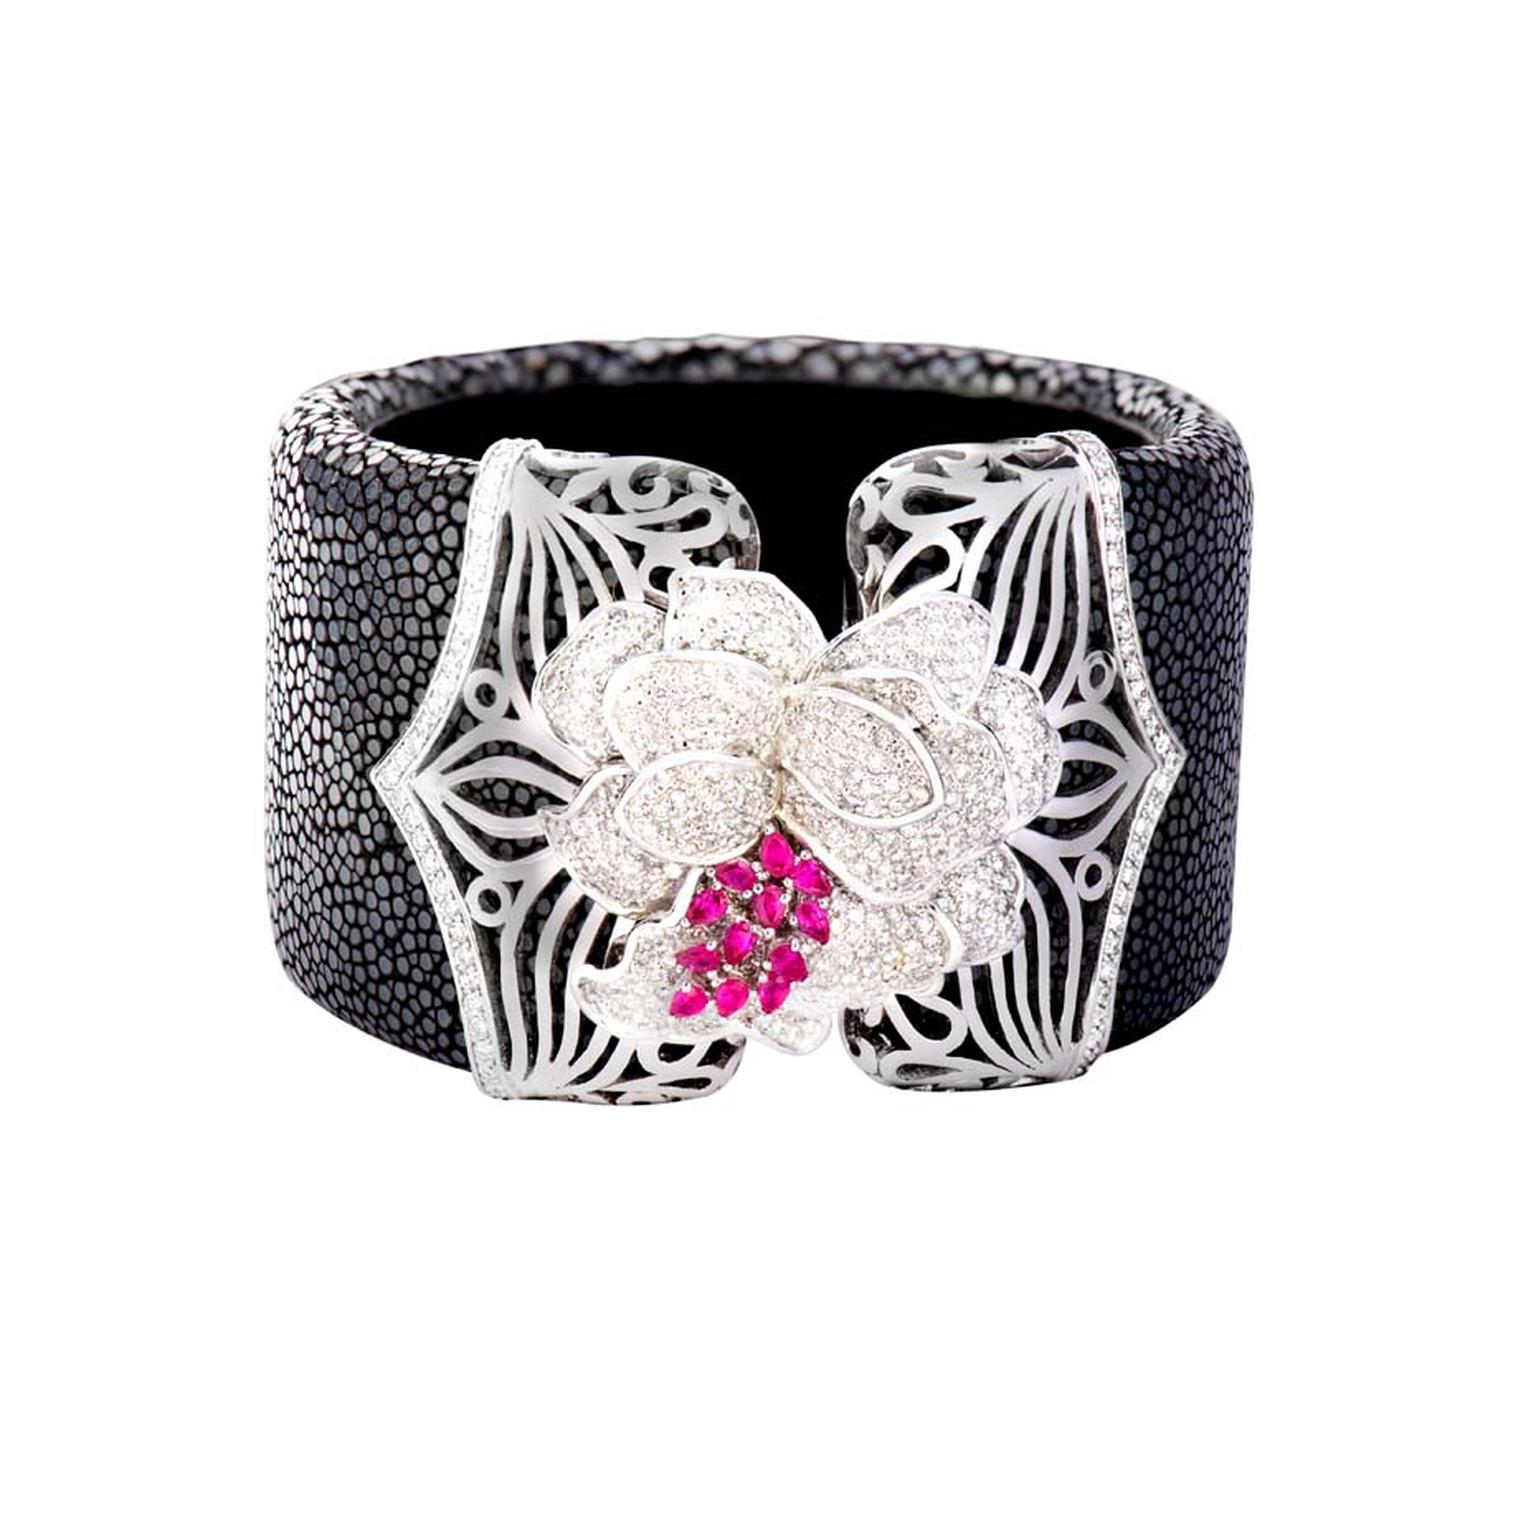 Damian by Mischelle Galuchat bangle with diamonds and rubies